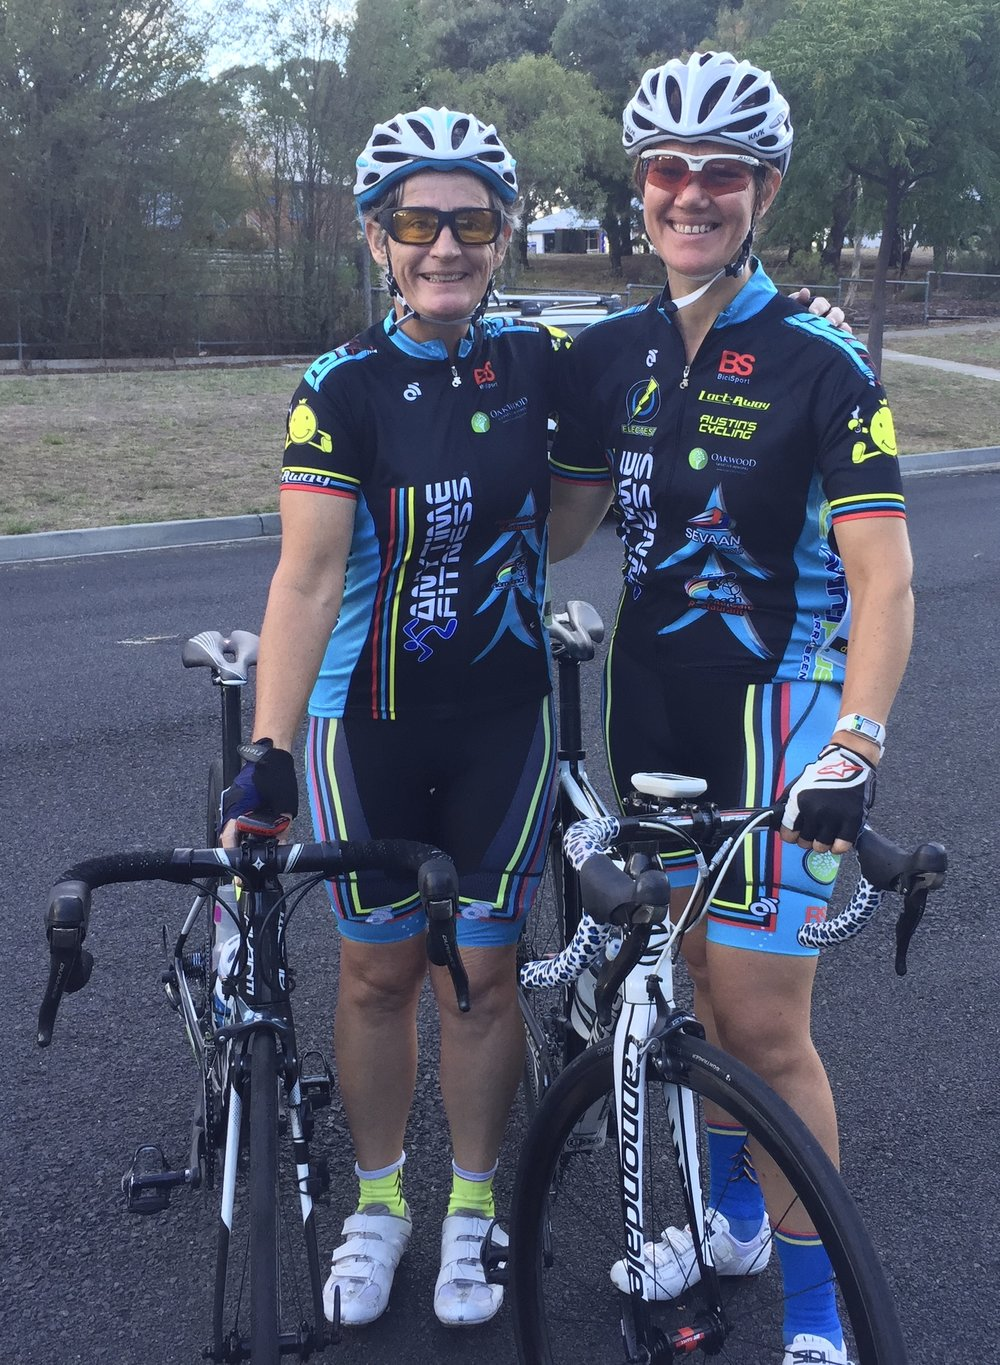 Bathurst Womens Tour - Ruth Strapp took the B grade podium in the Criterium, Road Race and ITT & Kirsty Flanagan rode well in C grade